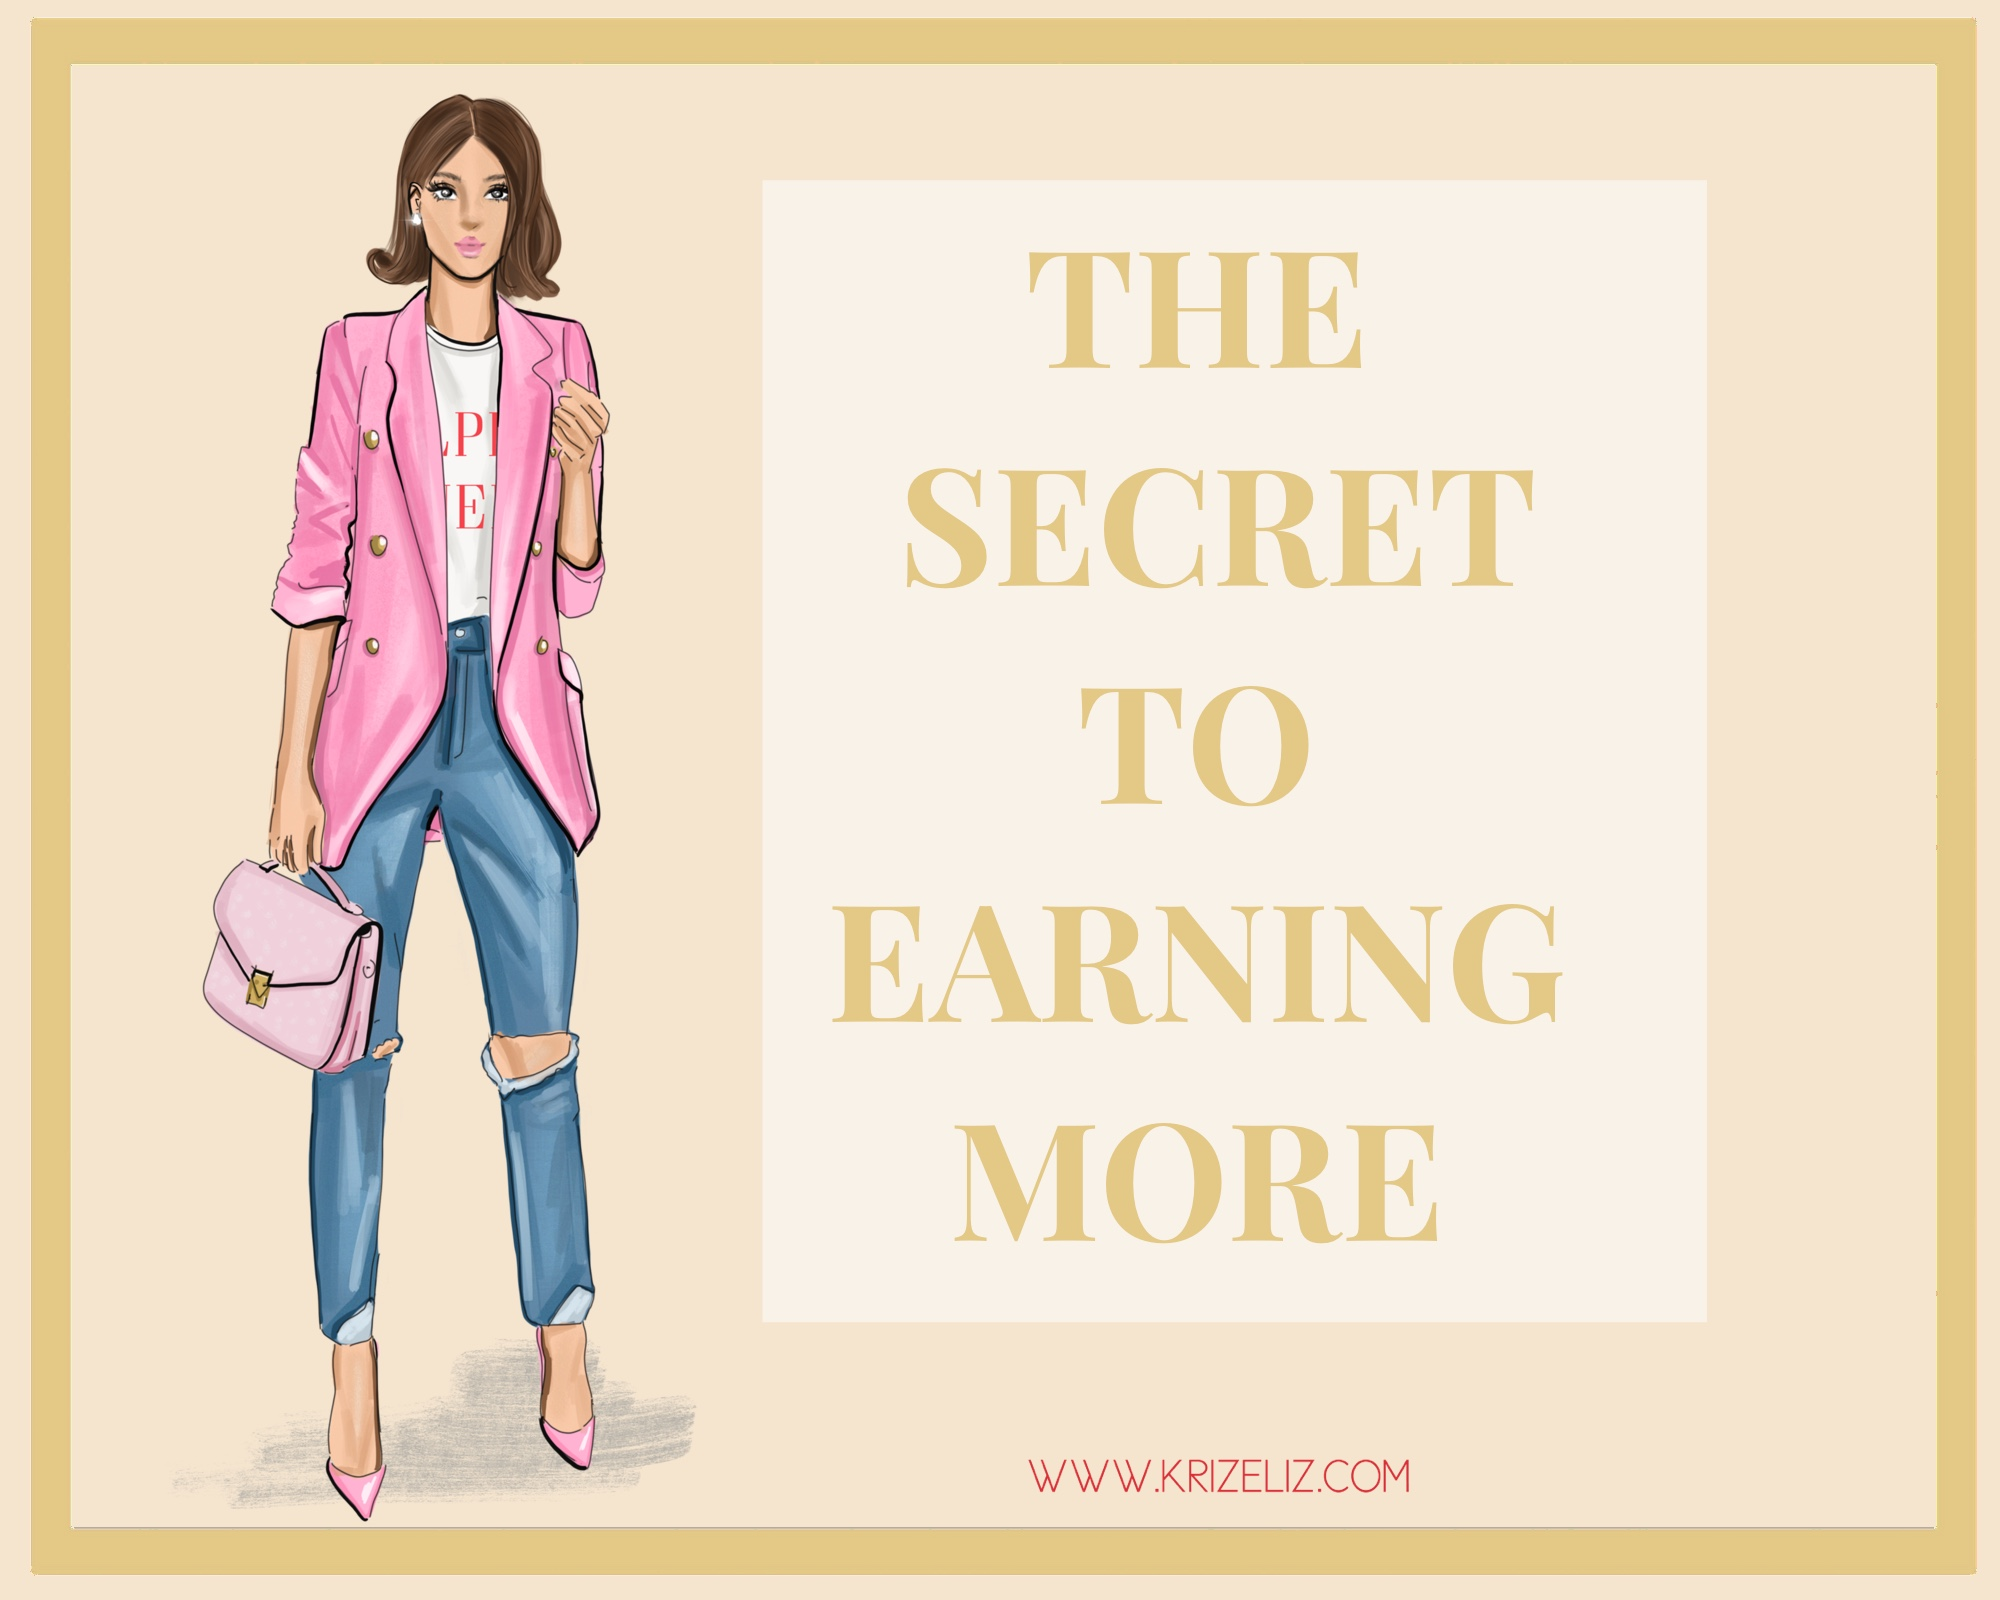 The Secret to Earning More